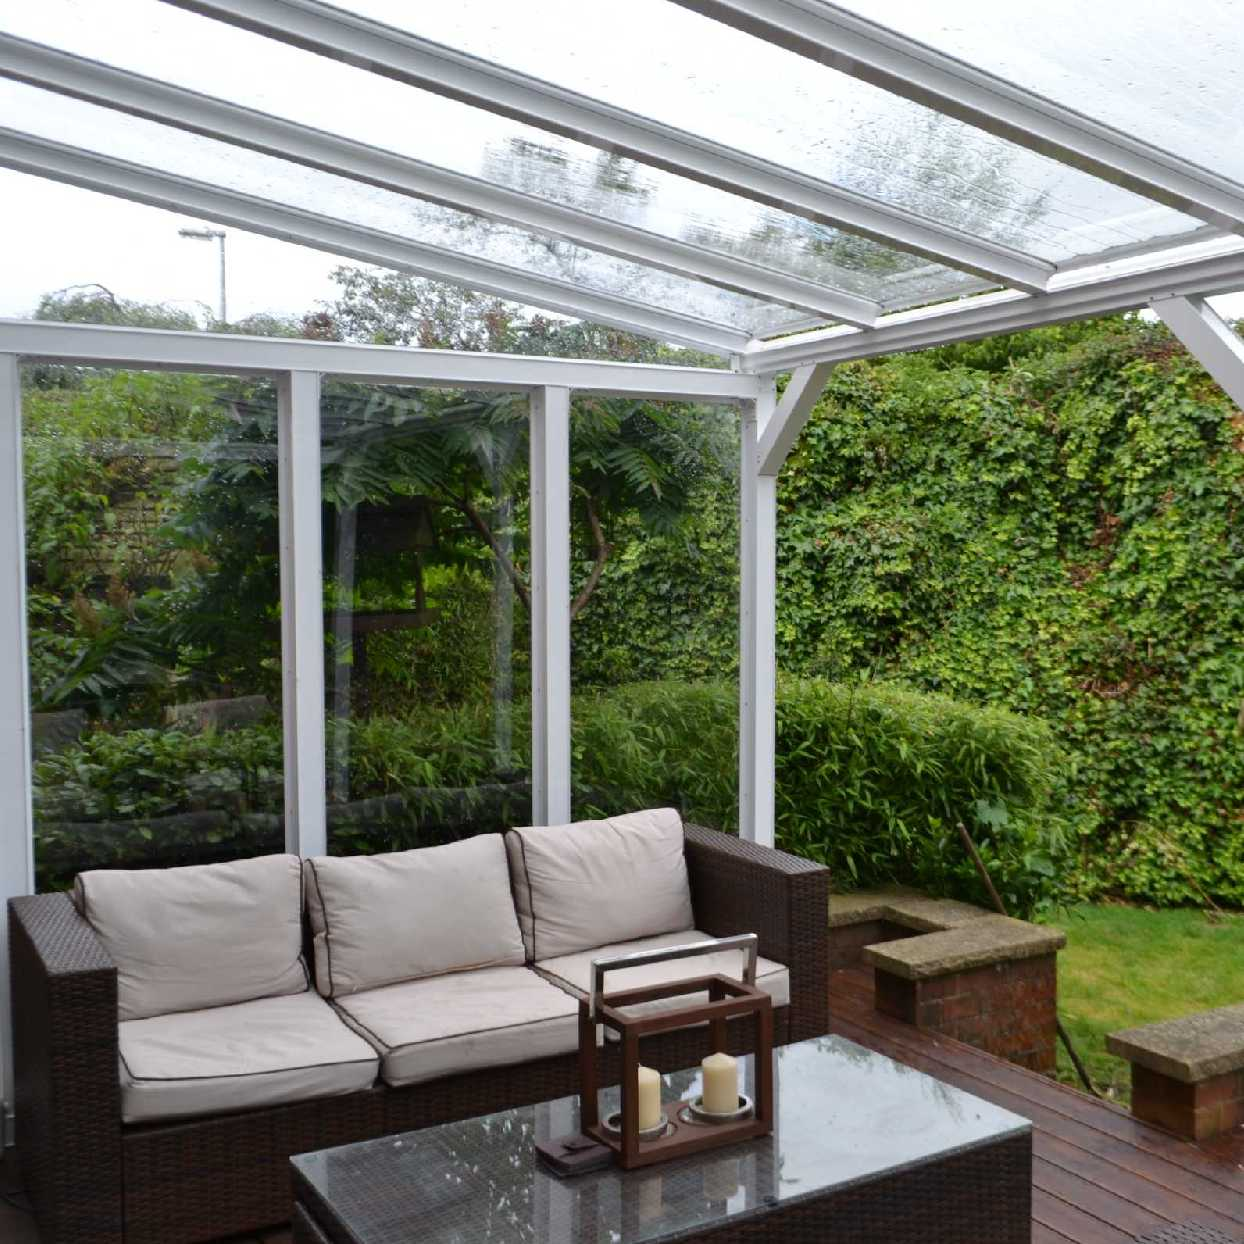 Great selection of Omega Smart White Lean-To Canopy with 16mm Polycarbonate Glazing - 11.6m (W) x 1.5m (P), (5) Supporting Posts